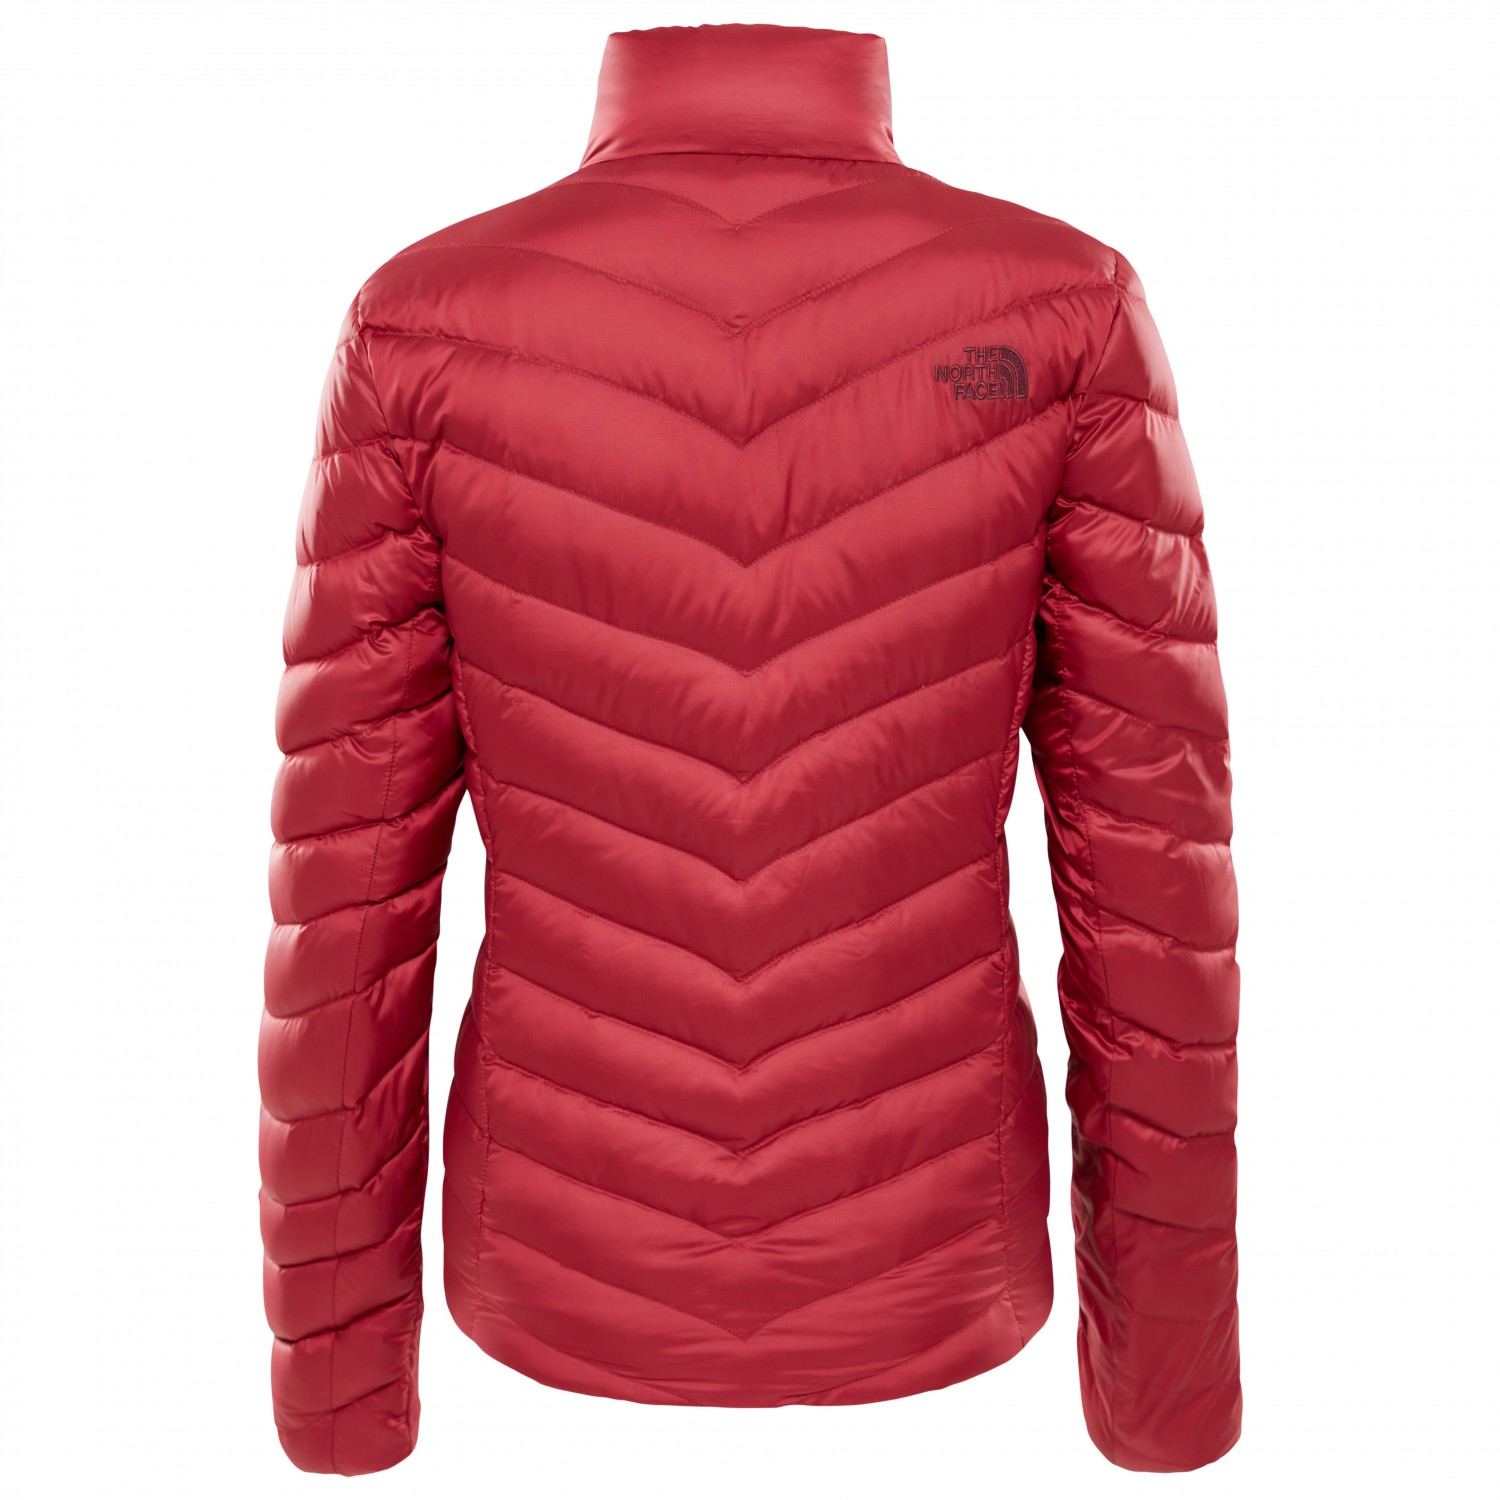 eb45019d0 The North Face Trevail Jacket 700 - Down Jacket Women's | Buy online ...